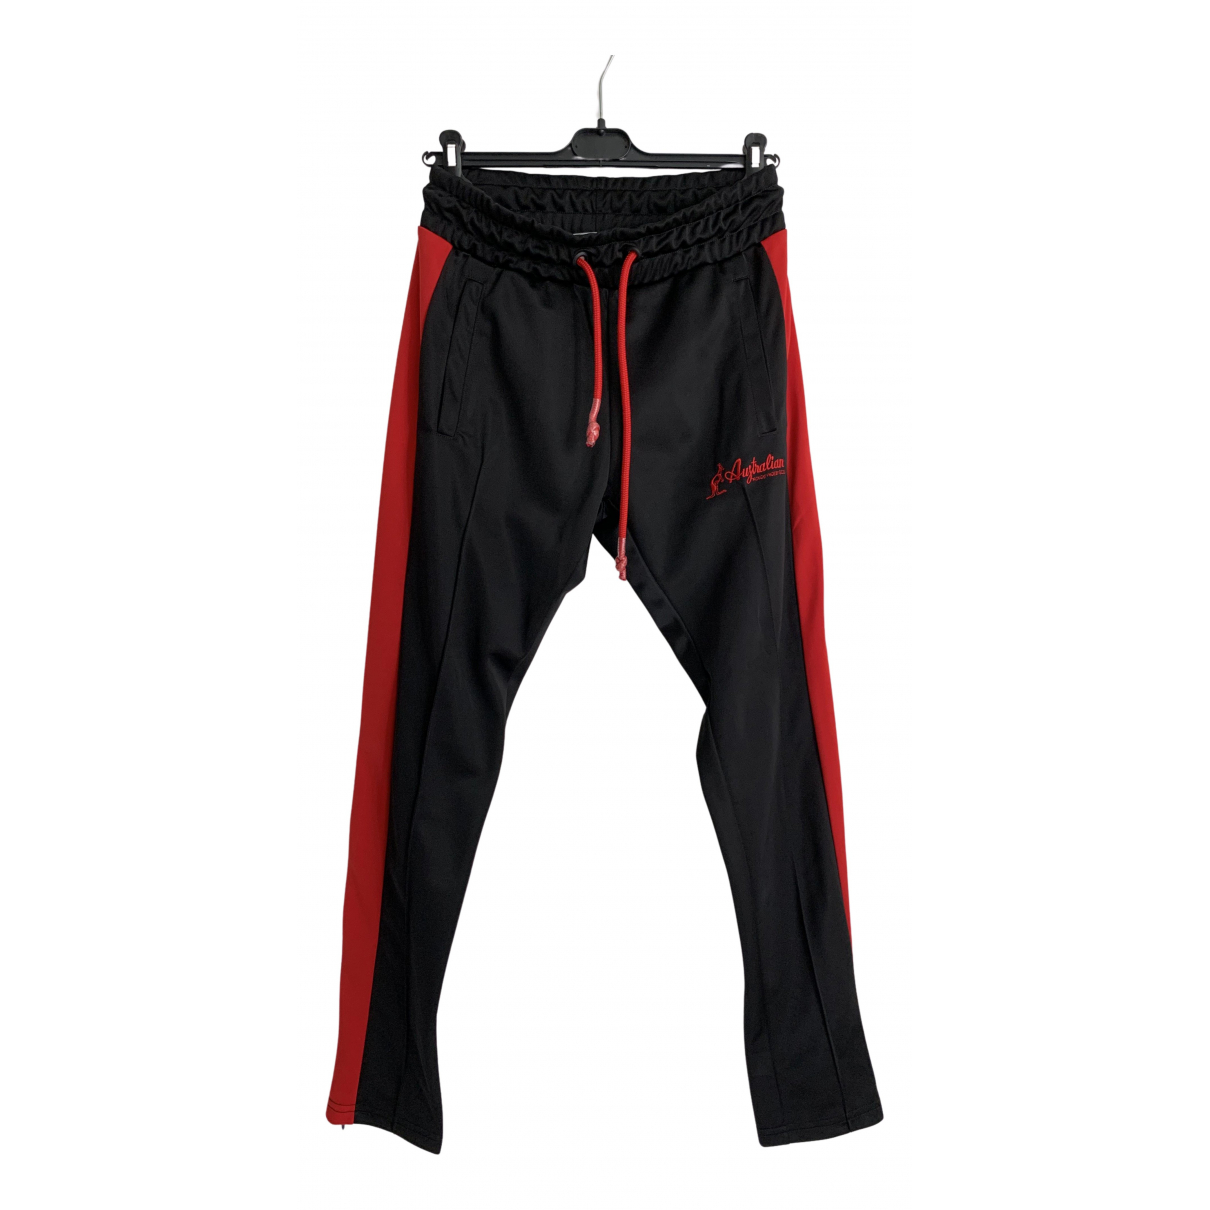 Gcds N Black Trousers for Men S International